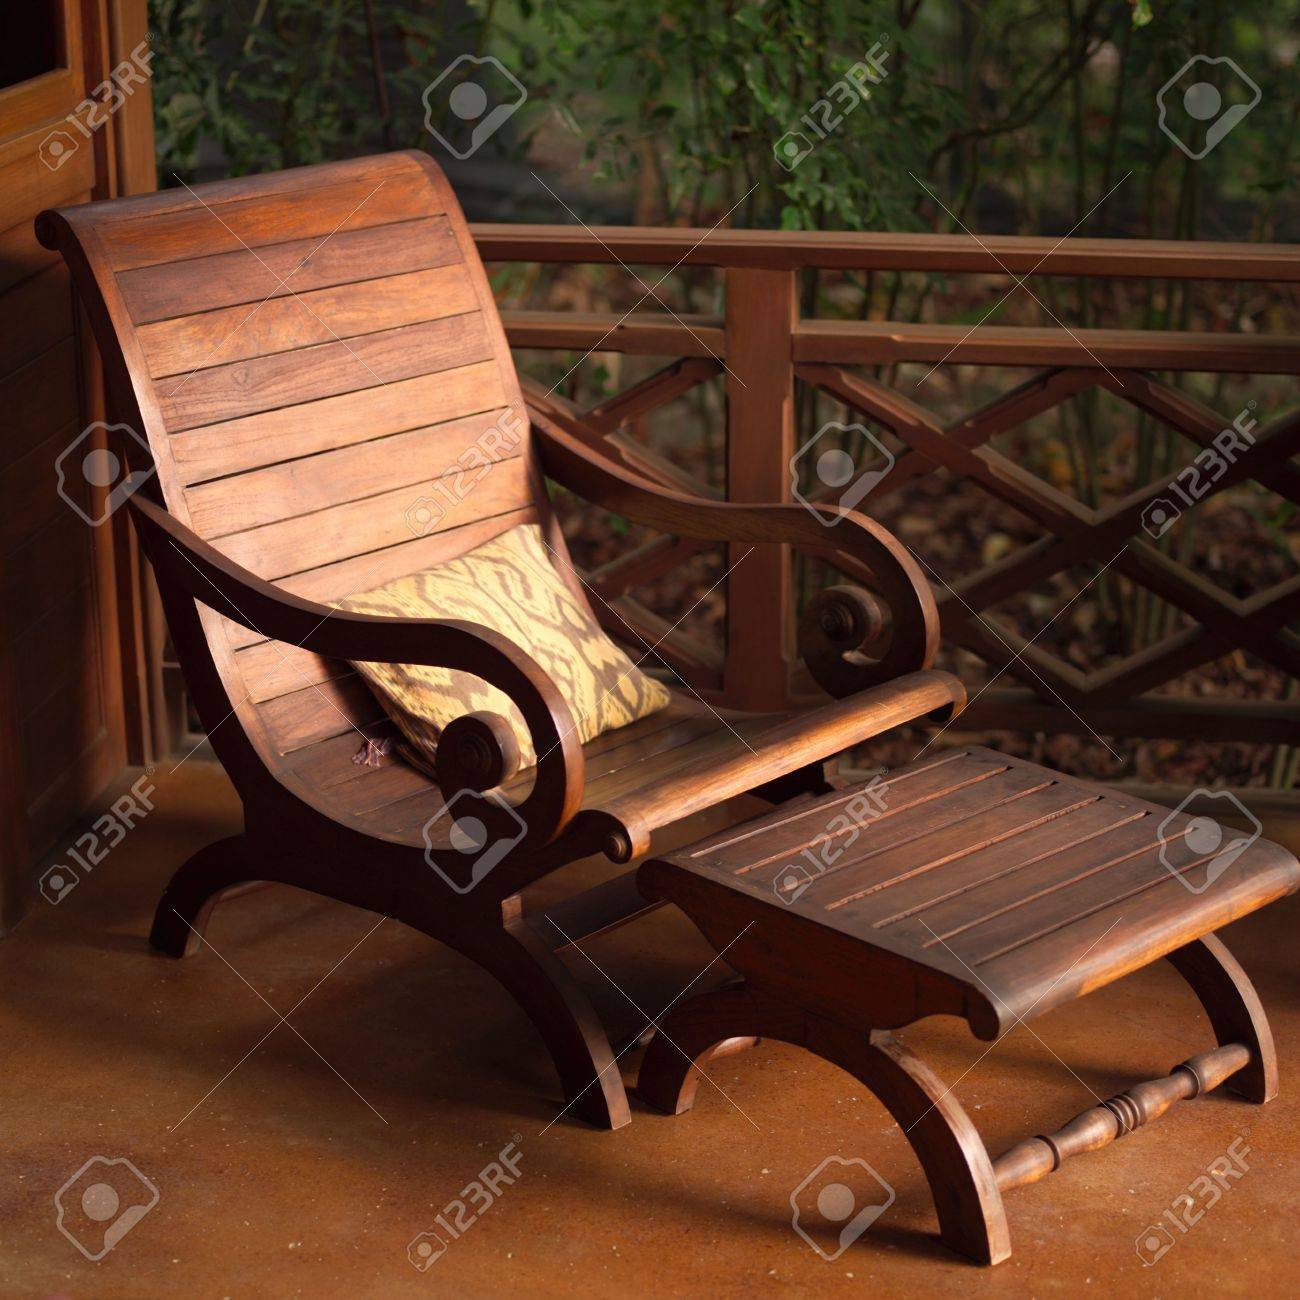 Merveilleux Malpais In Costa Rica,Empty Wooden Lounge Chair Stock Photo   2334766